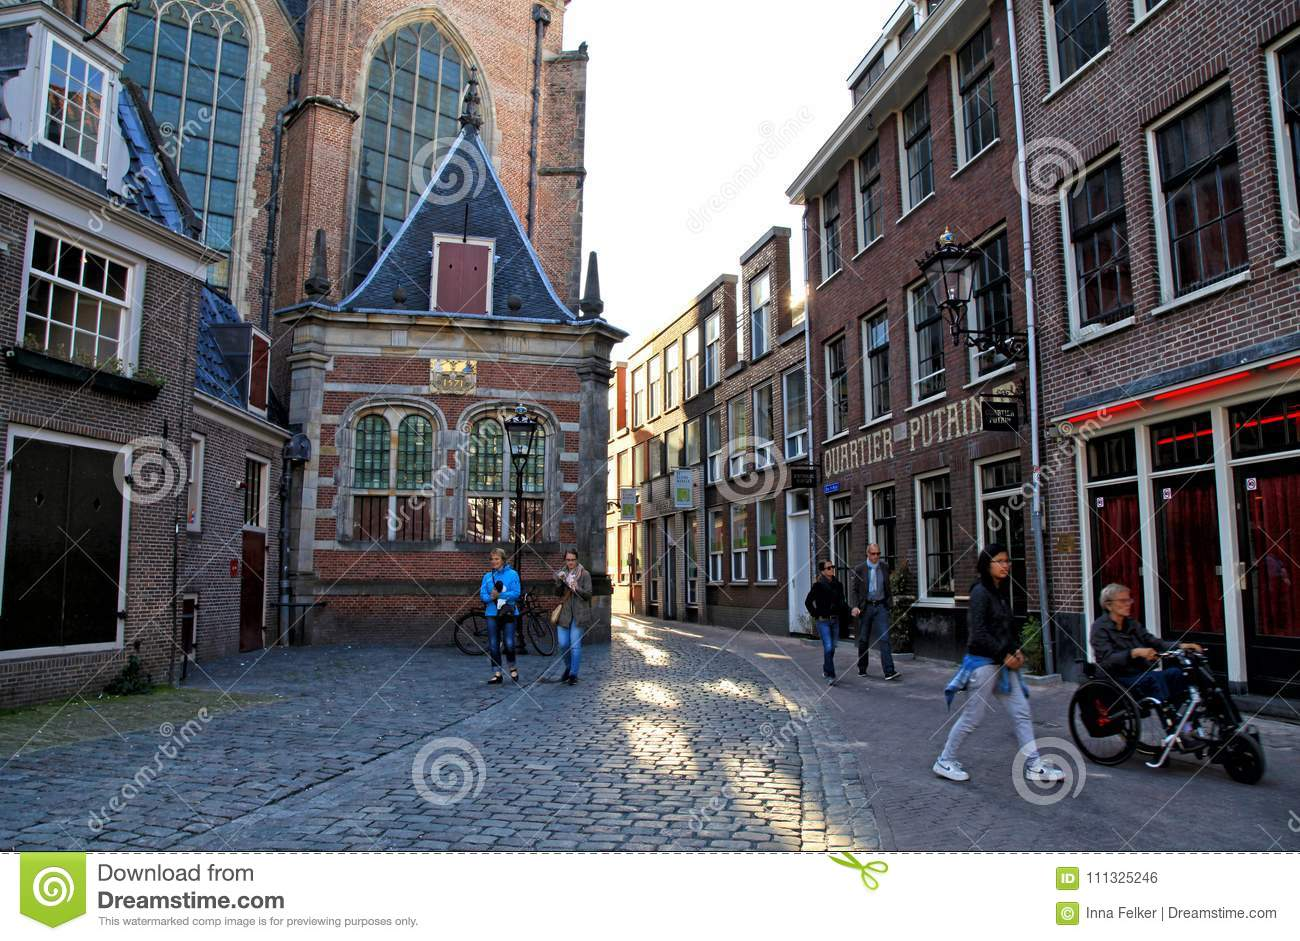 Old church and tourists on the street at the red light district